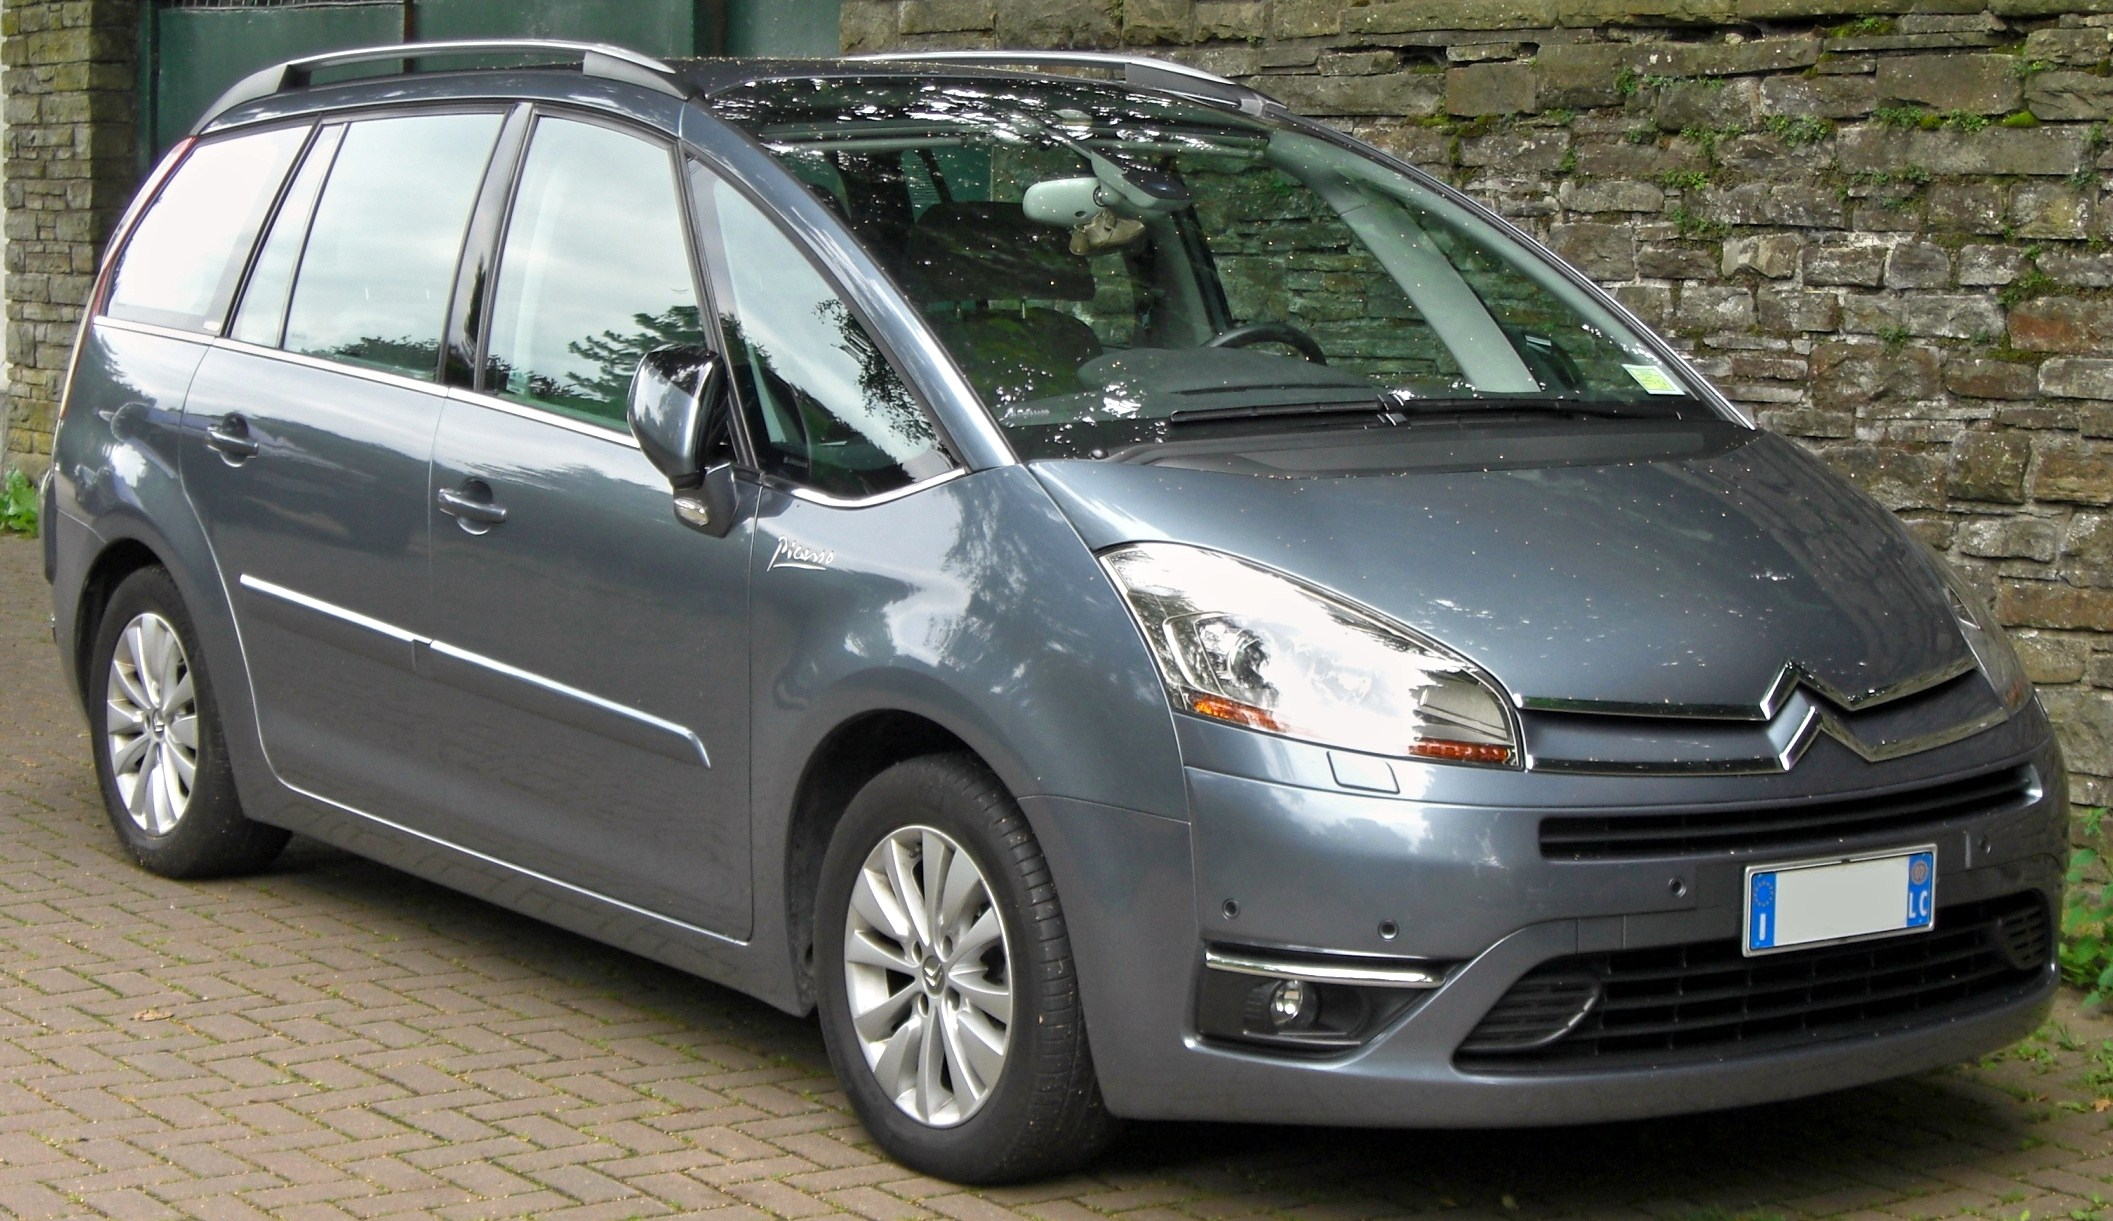 citroen c4 grand picasso reviews citroen c4 grand picasso car reviews. Black Bedroom Furniture Sets. Home Design Ideas